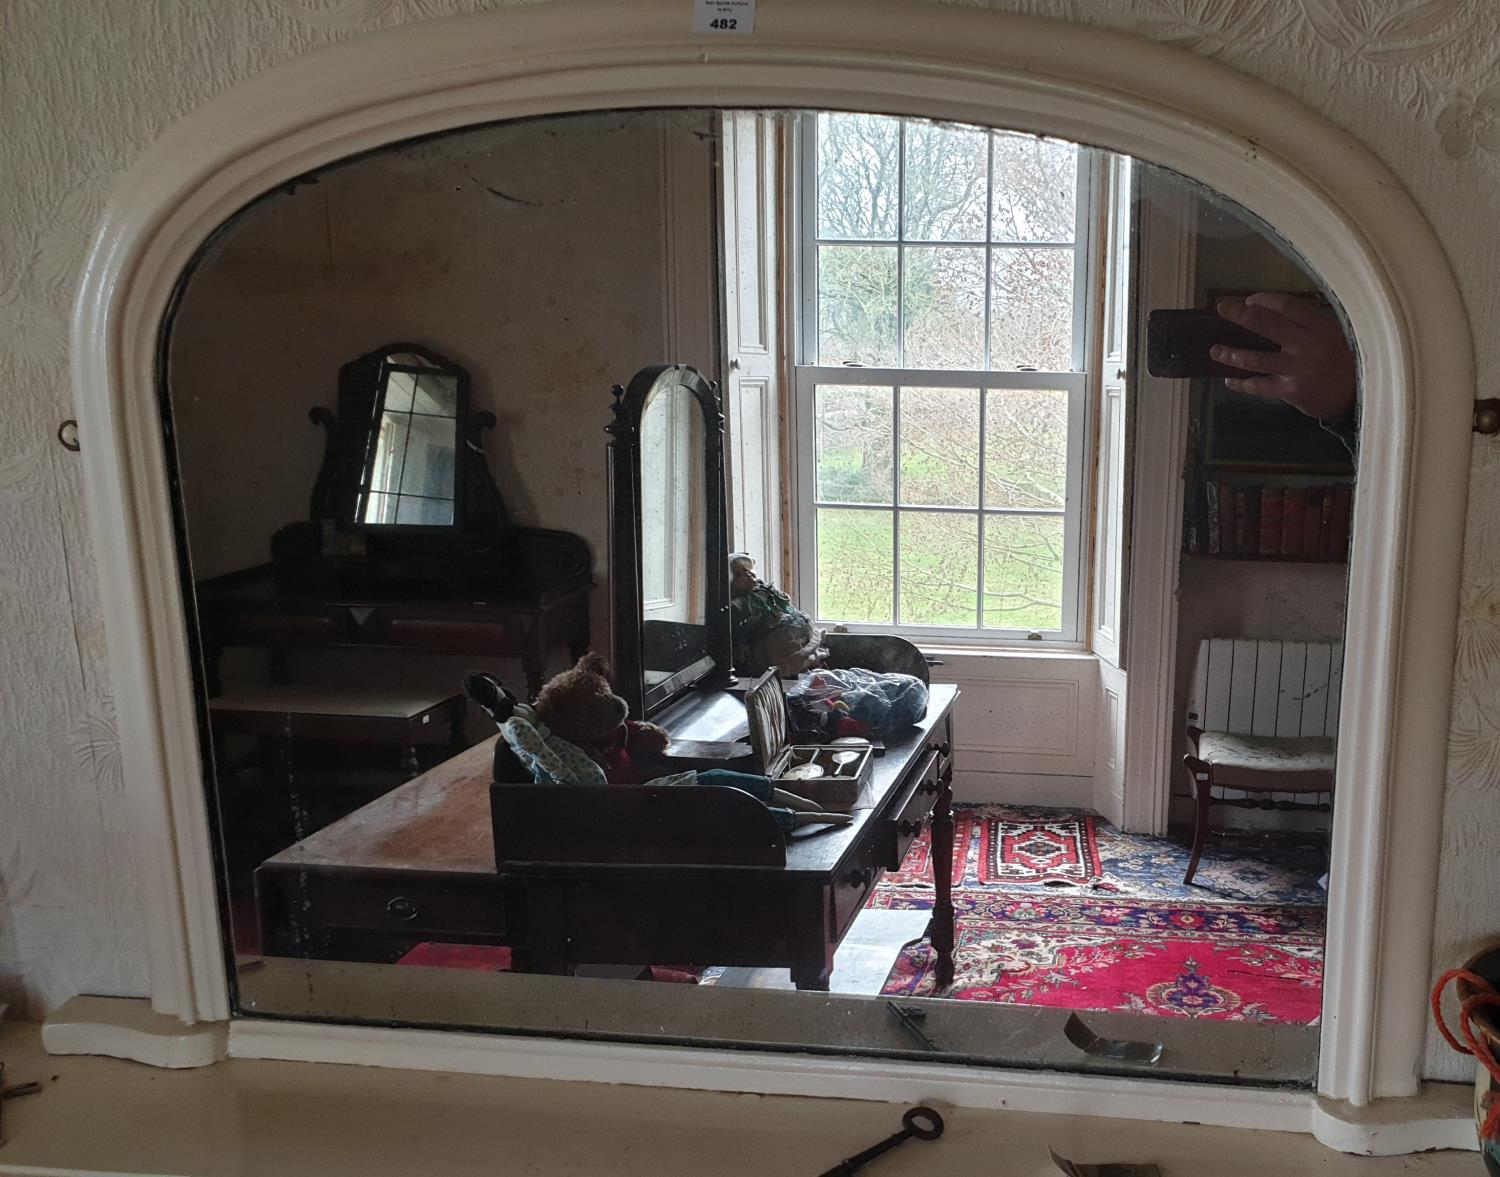 Lot 482 - A 19th Century Arch Top Mirror. 96 x 66cm.